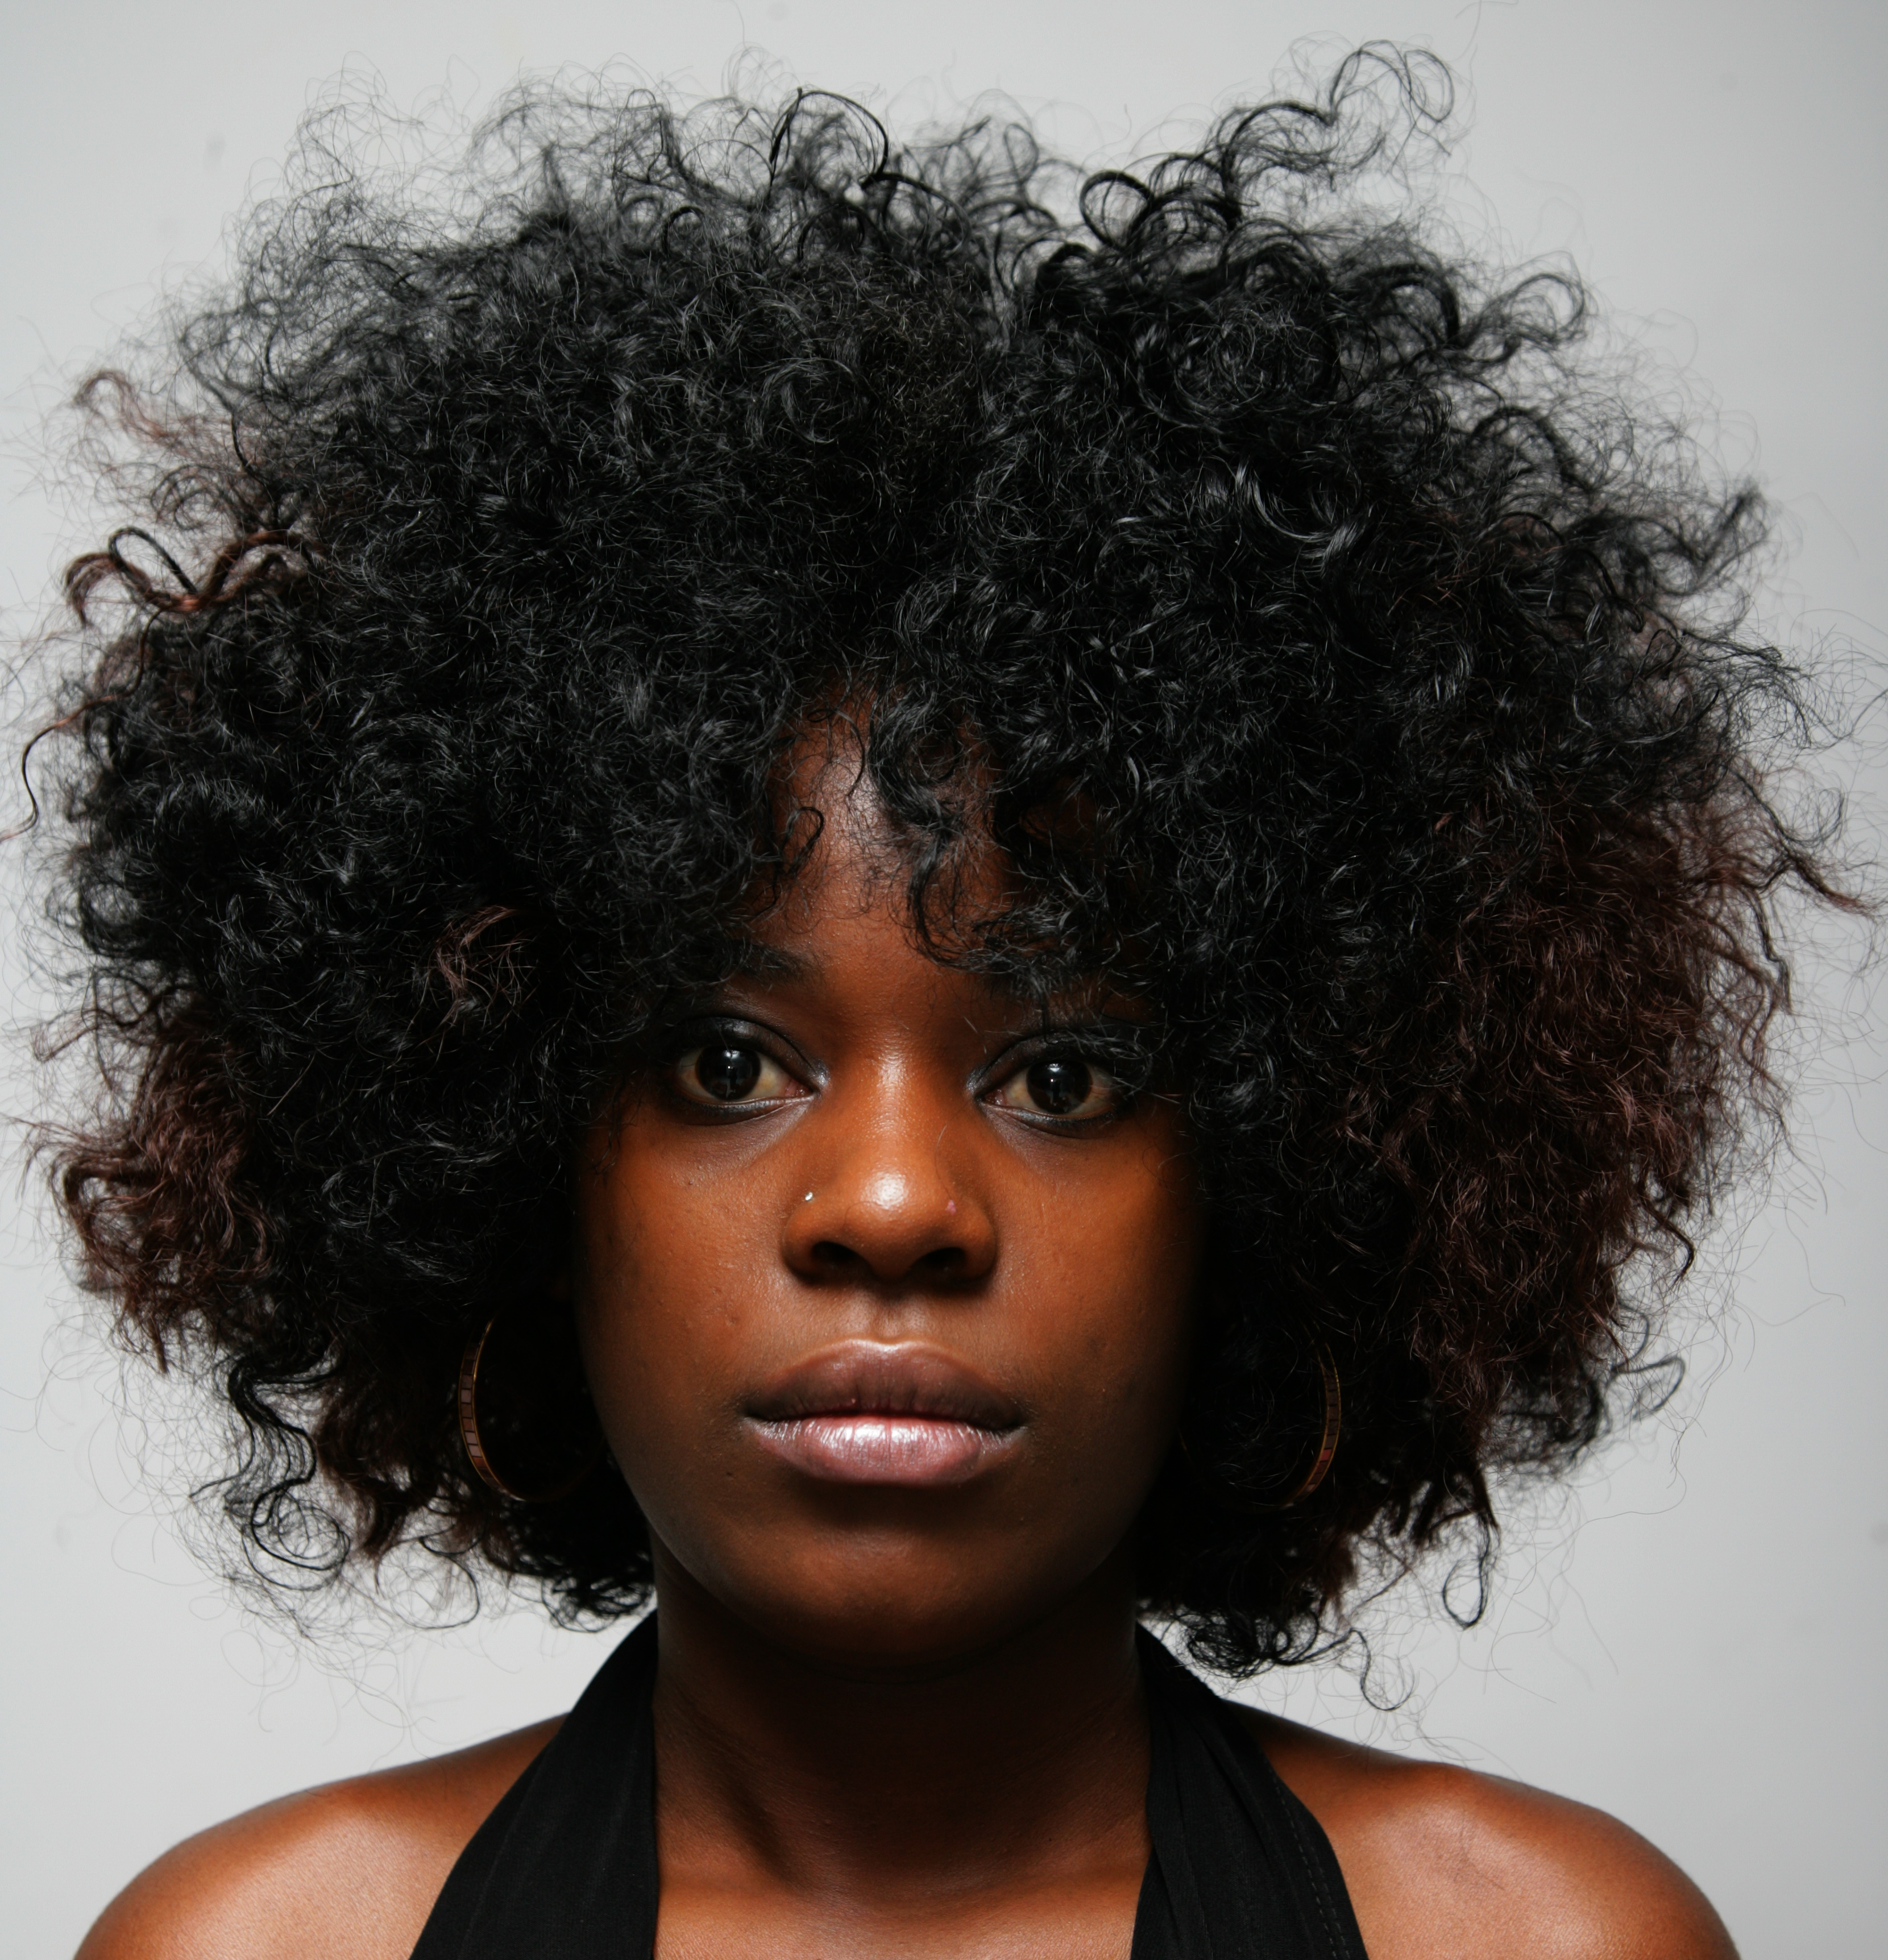 photo of African American woman with natural hair